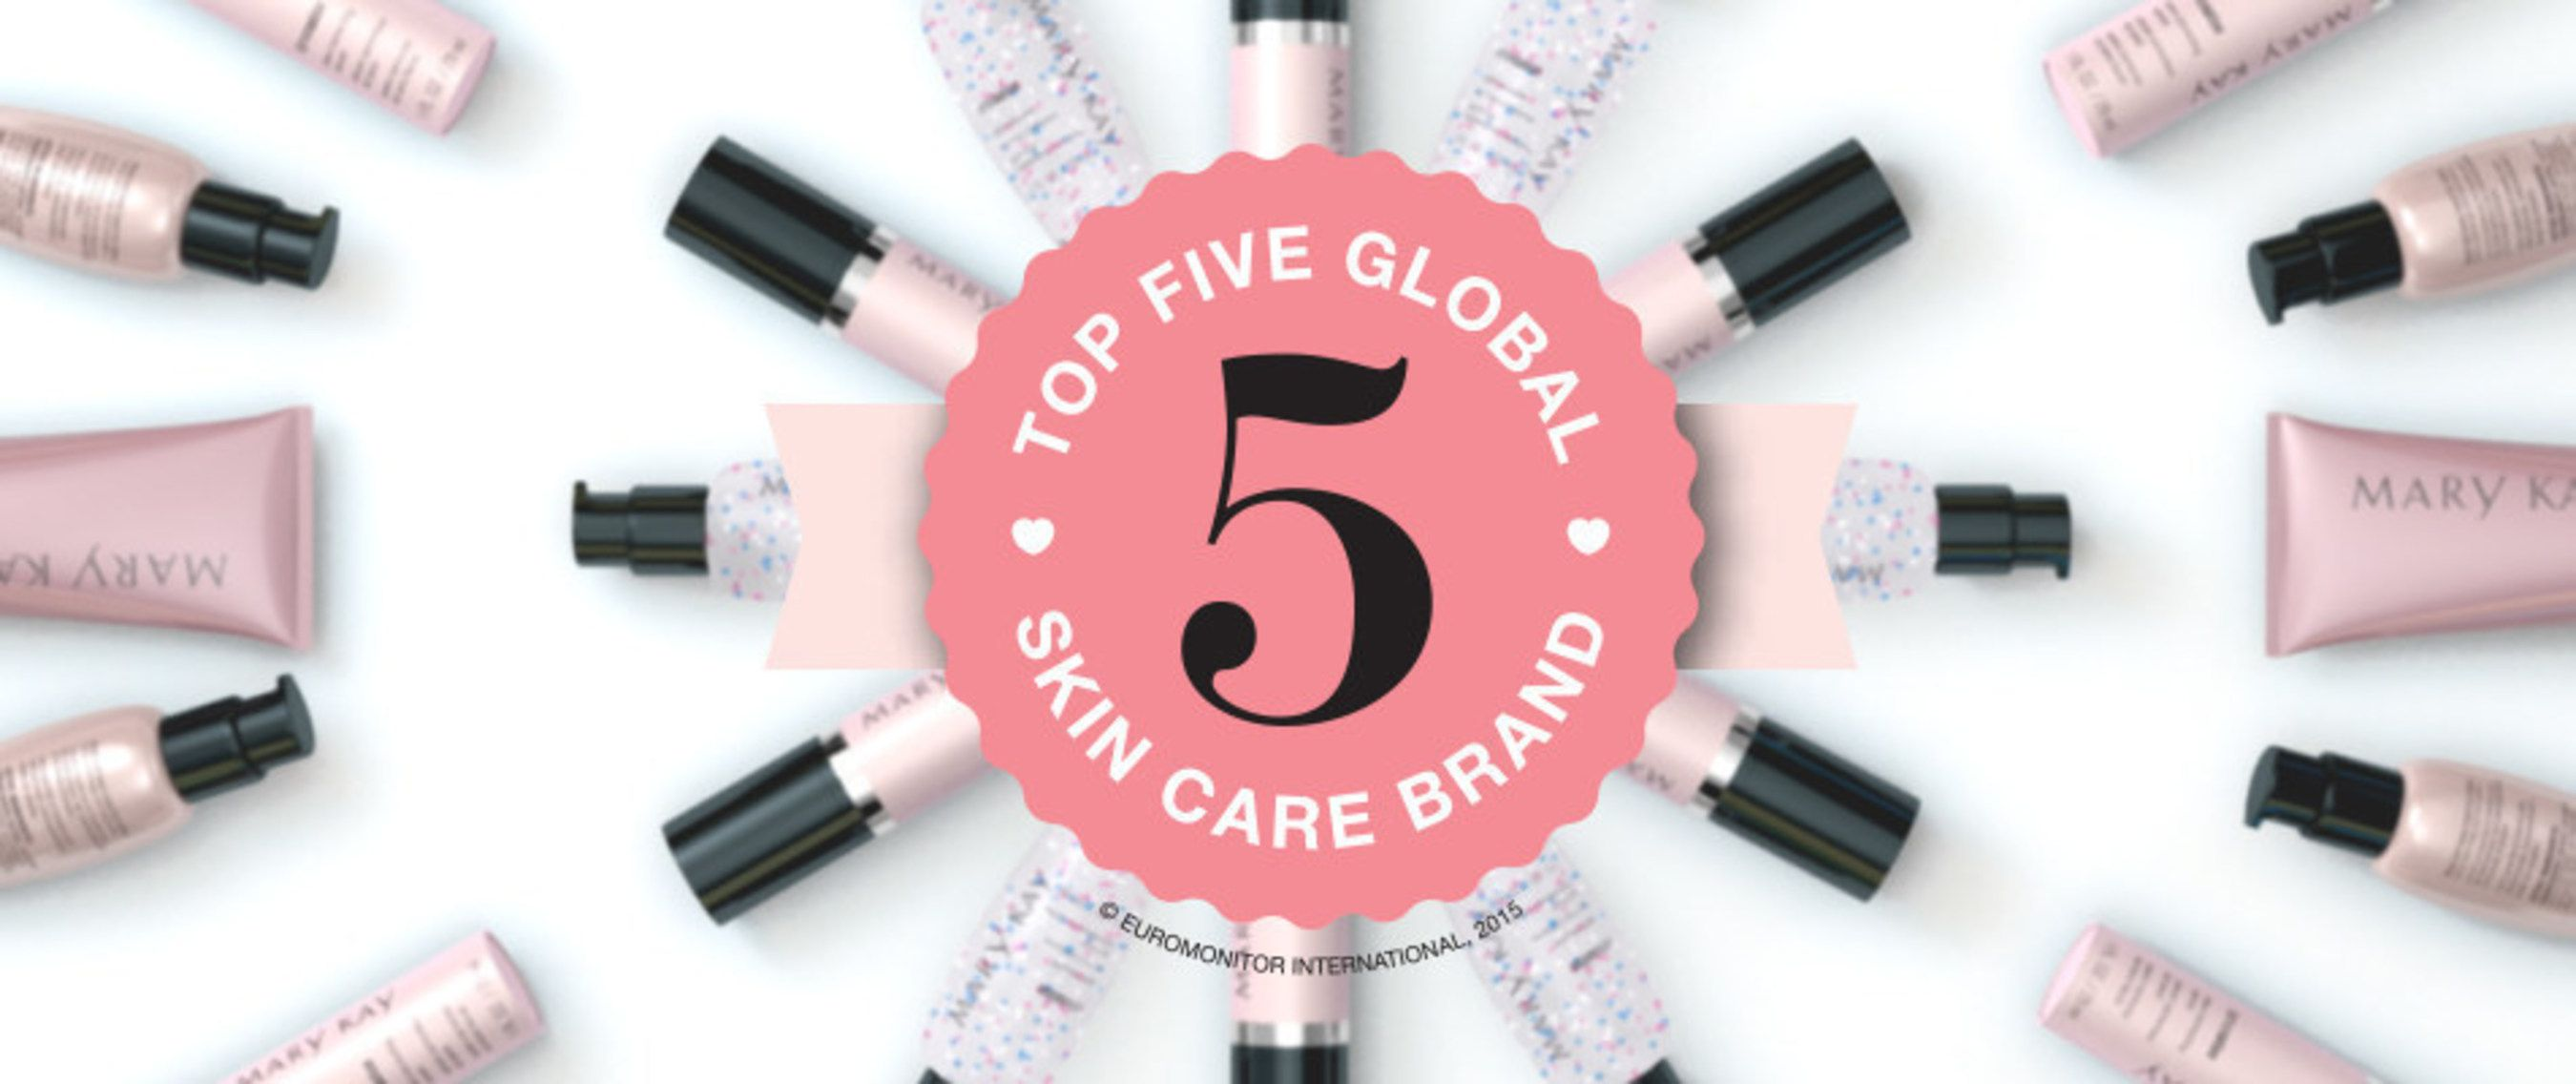 Mary Kay Named Top 5 Global Skin Care Brand In 2020 Skin Care Brands Mary Kay Consultant Mary Kay Party